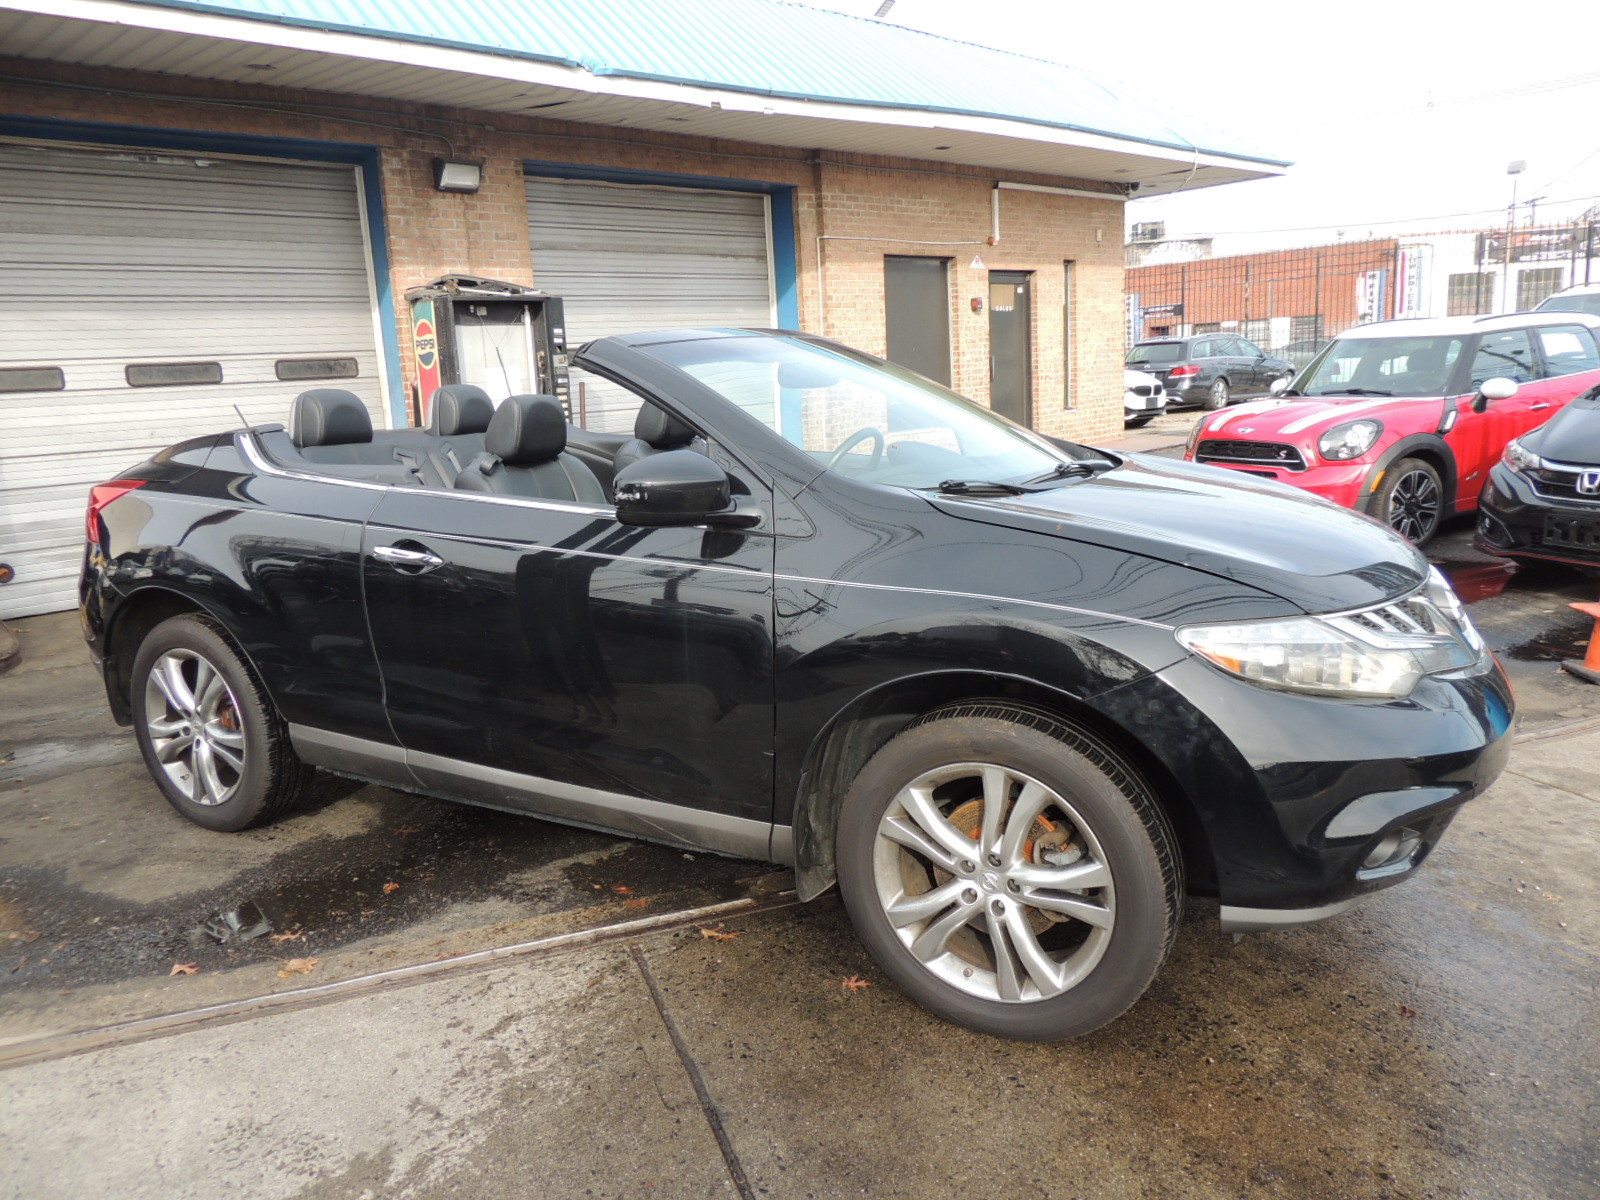 Nissan Salvage For Sale Repairable Cars At Auction Prices: Salvage Rebuildable Repairables NISSAN KICKS For Sale